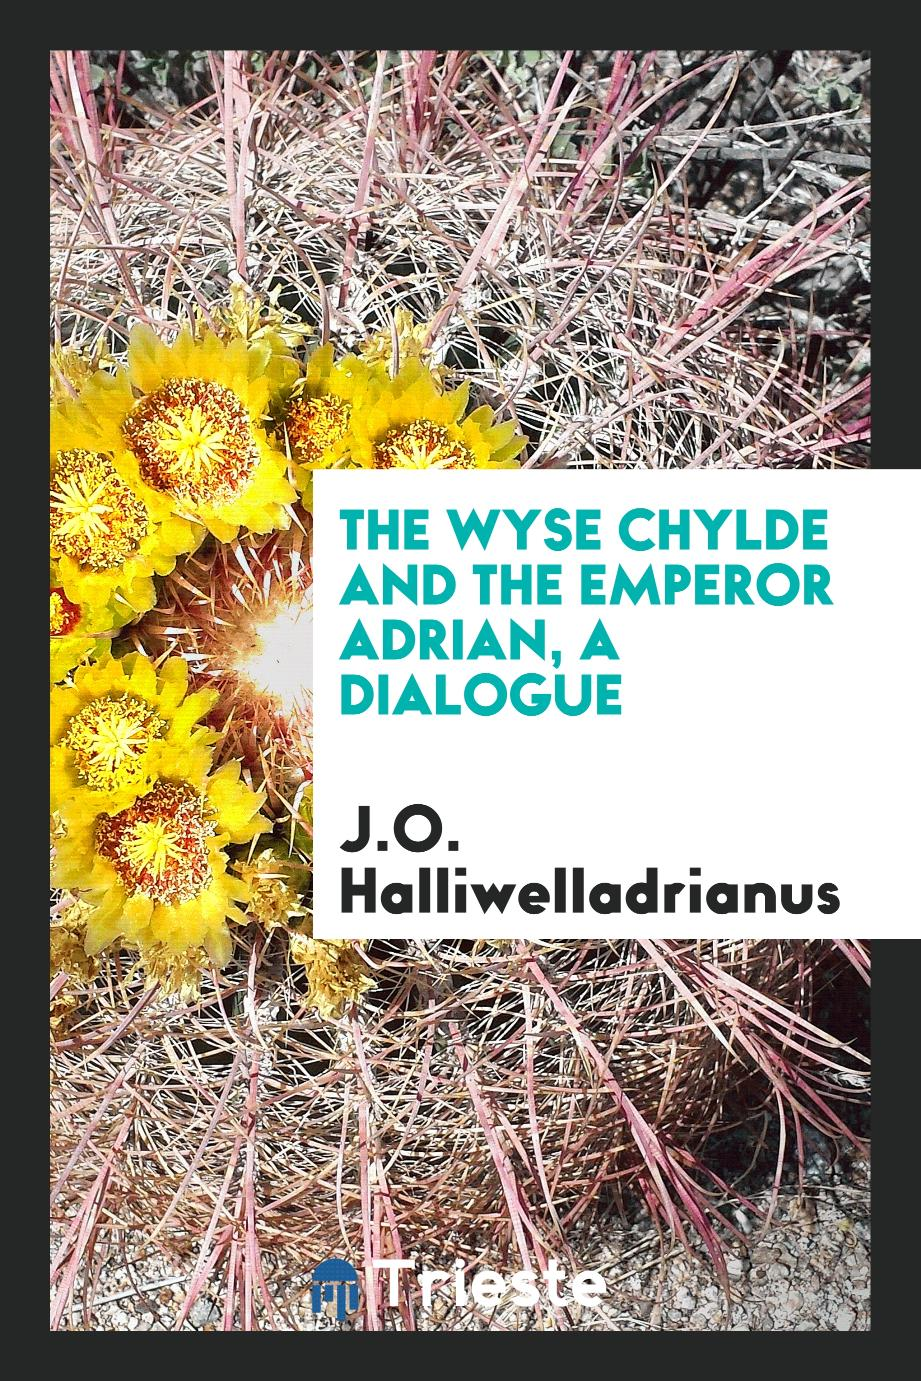 The wyse chylde and the emperor Adrian, a dialogue